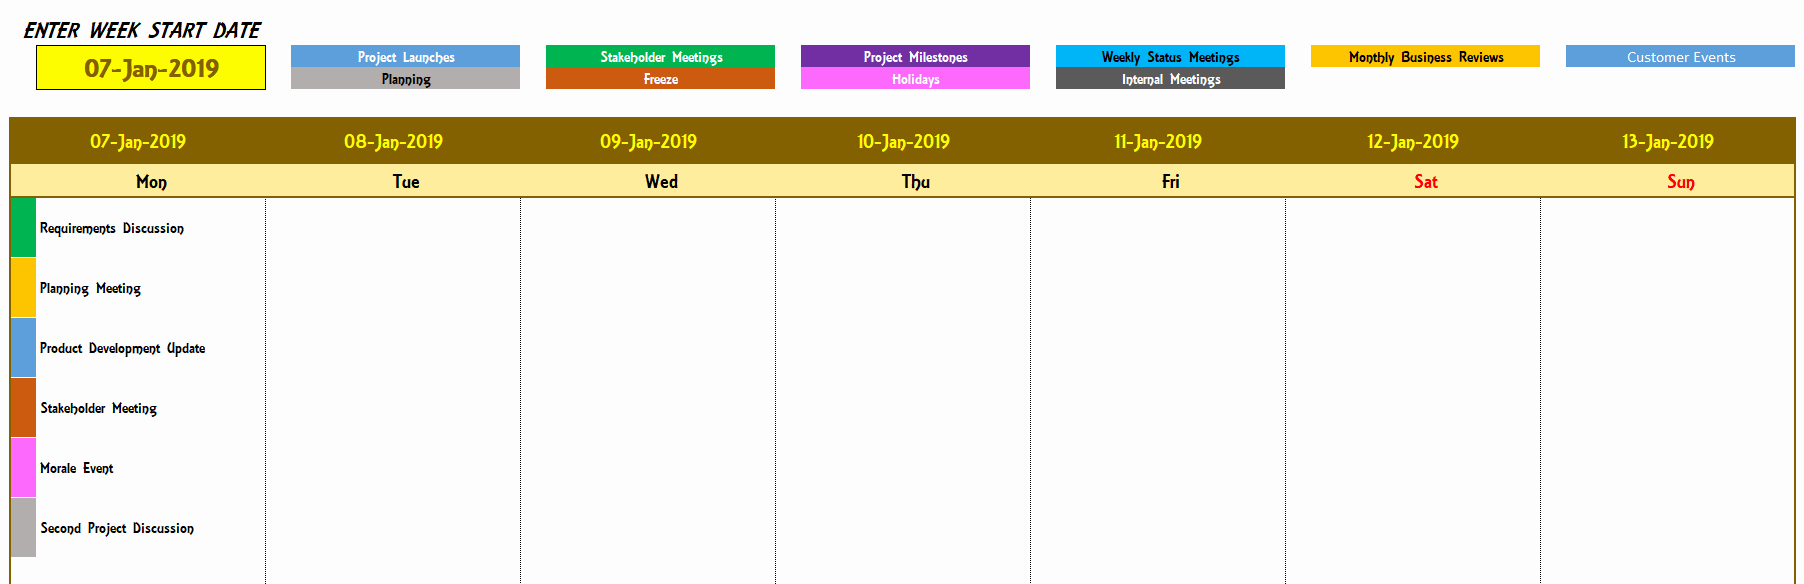 Weekly Schedule Templates Excel Lovely Excel Calendar Template Excel Calendar 2019 2020 or Any